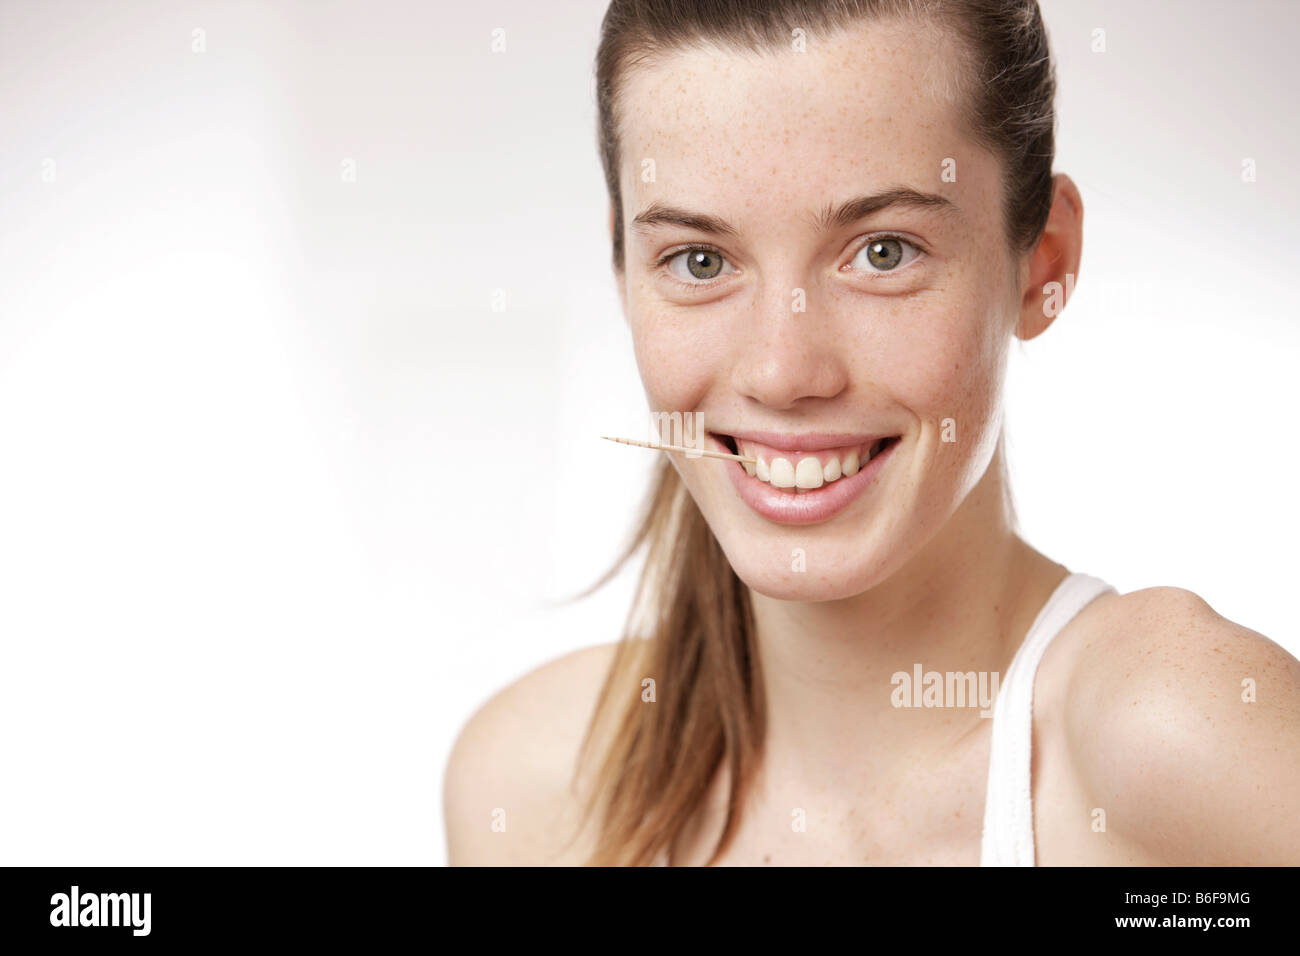 Teenager Haarschnitt Teenage Girl Woman Holding A Toothpick Between Her Teeth Stock